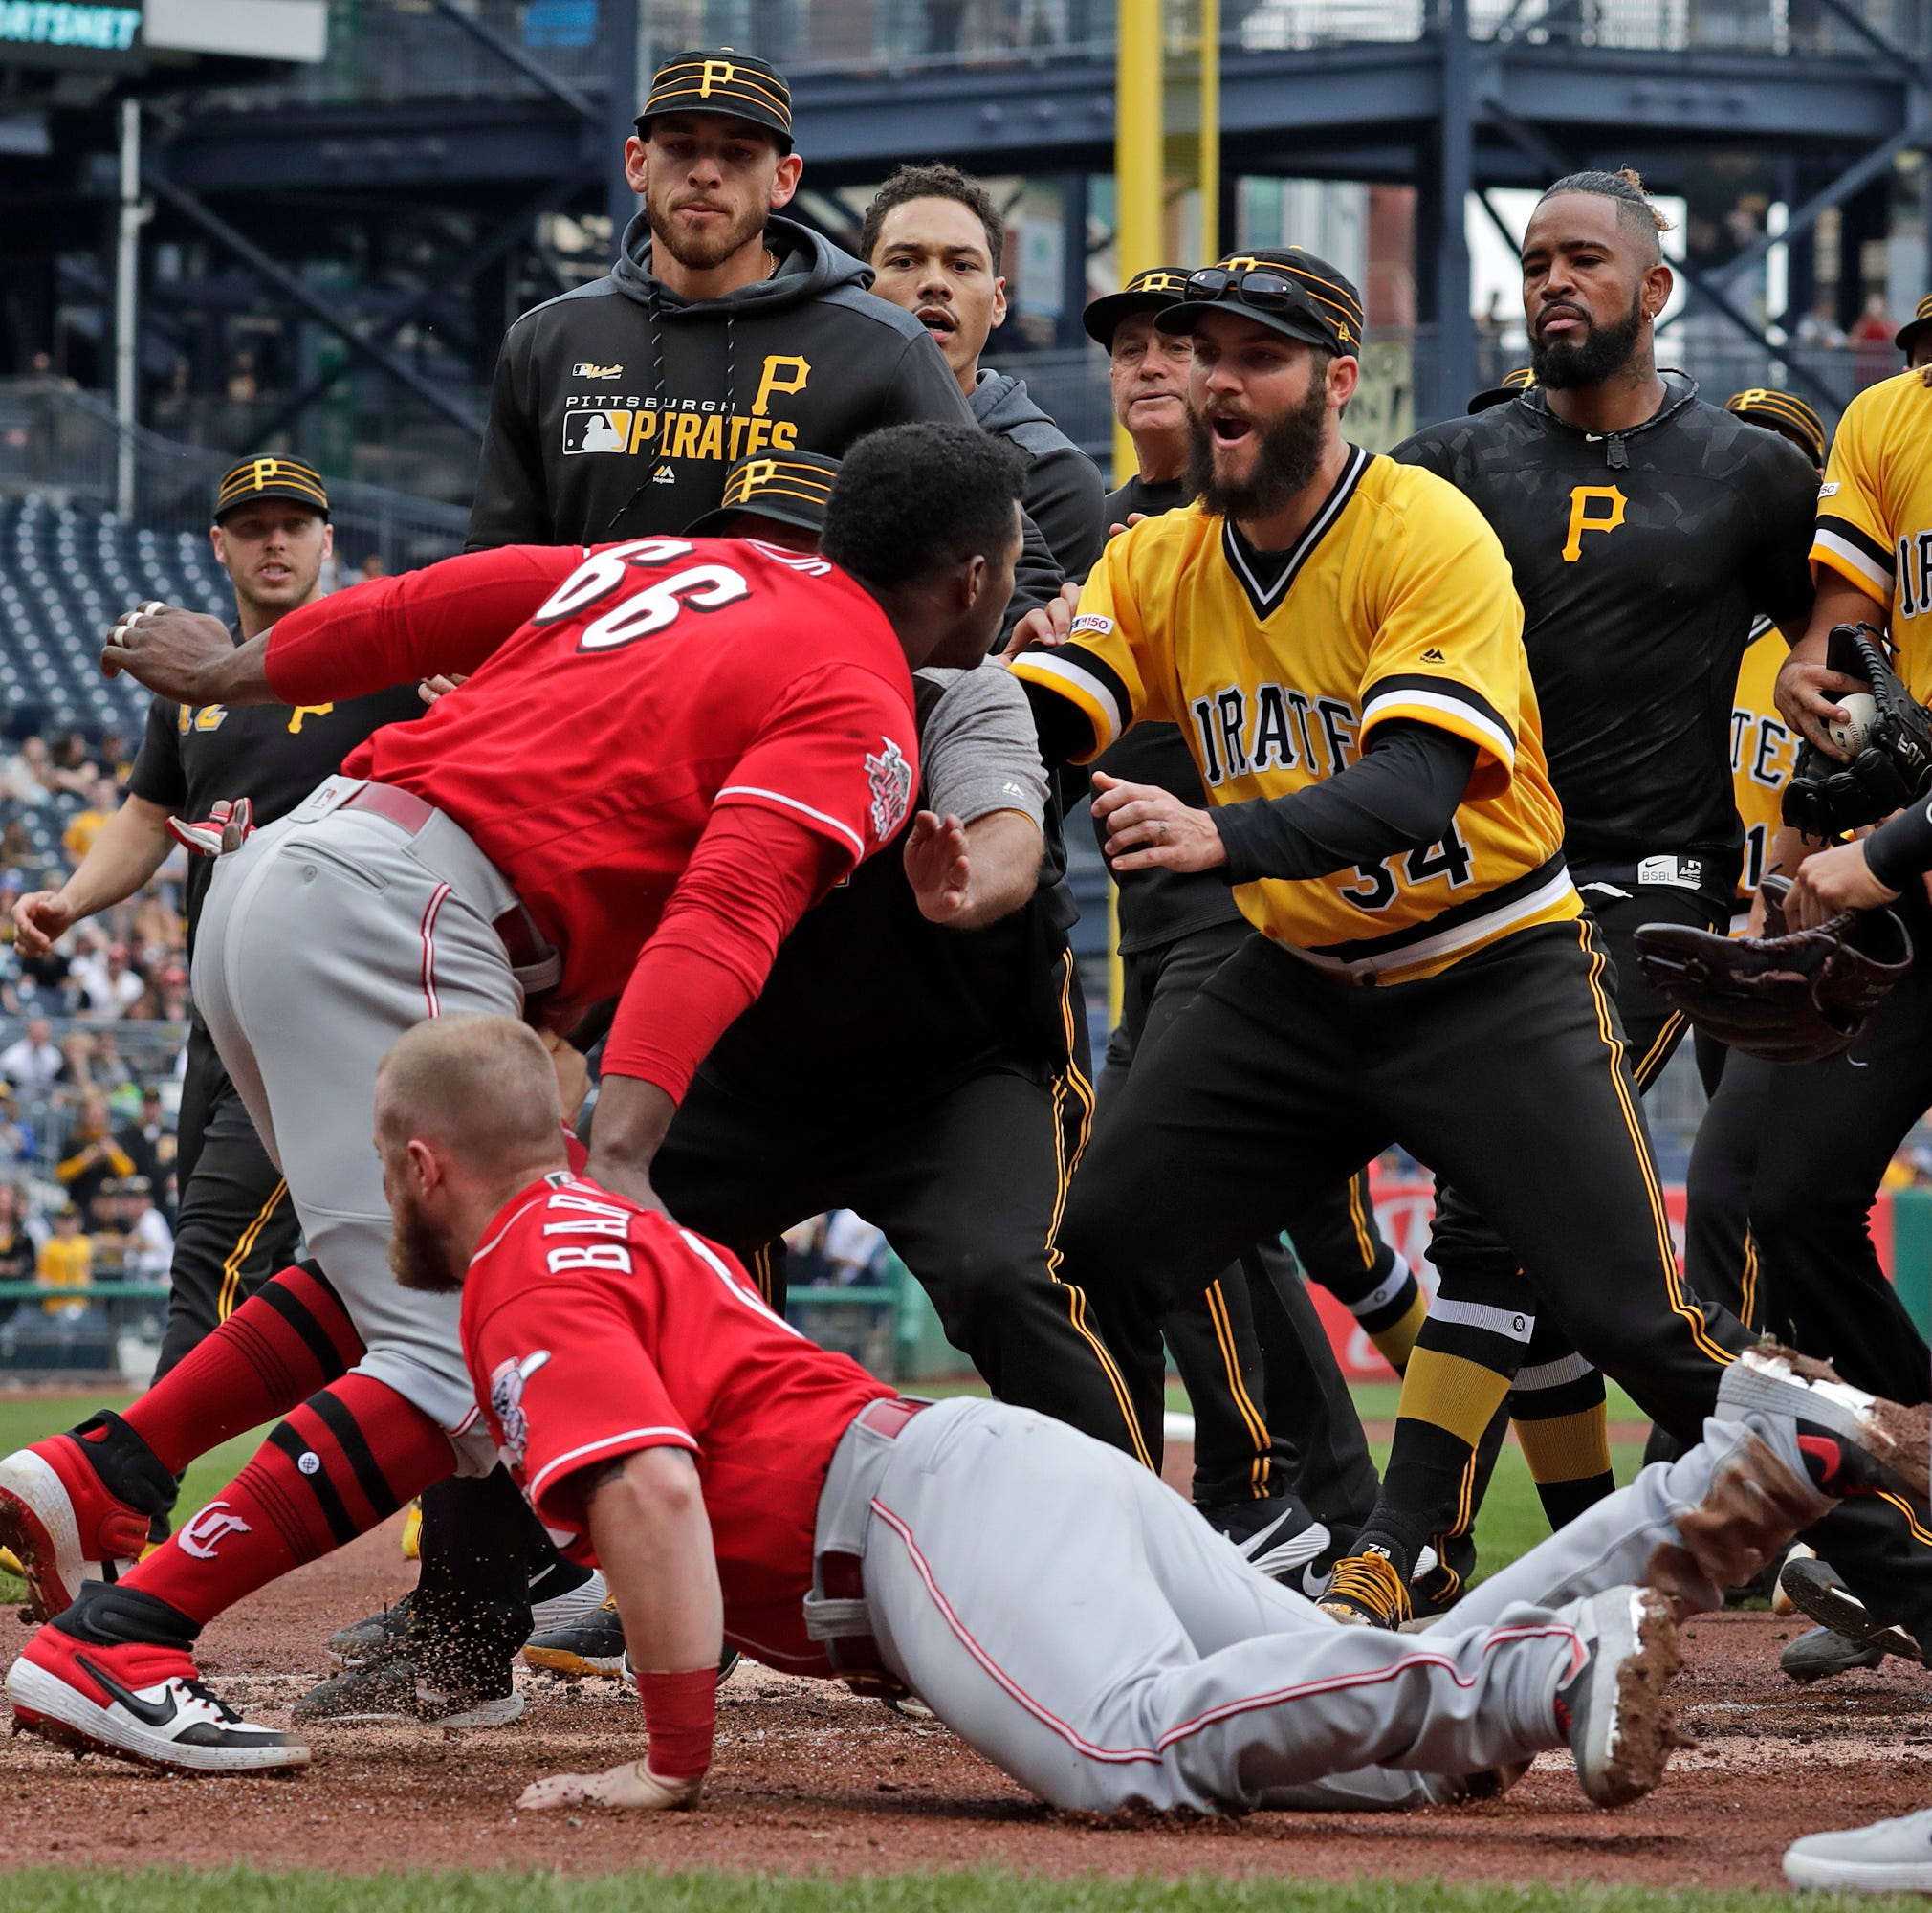 'You're not supposed to do that': Unwritten rules lead to Cincinnati Reds-Pirates scuffle